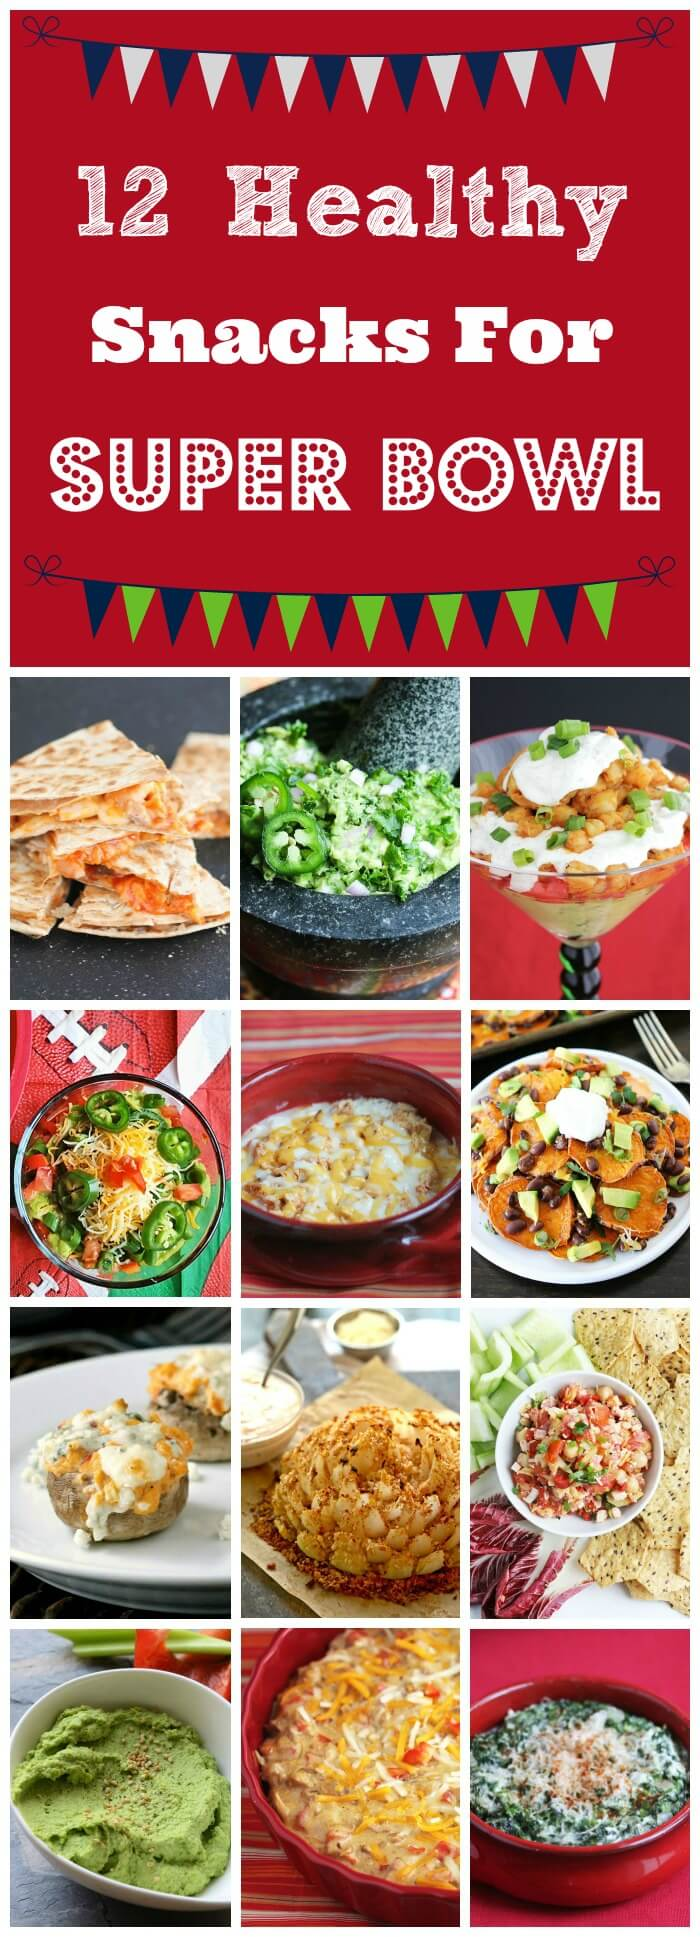 Healthy Snacks for Super Bowl - these are all Game Day favorites, lightened up so you can enjoy yourself at the party!